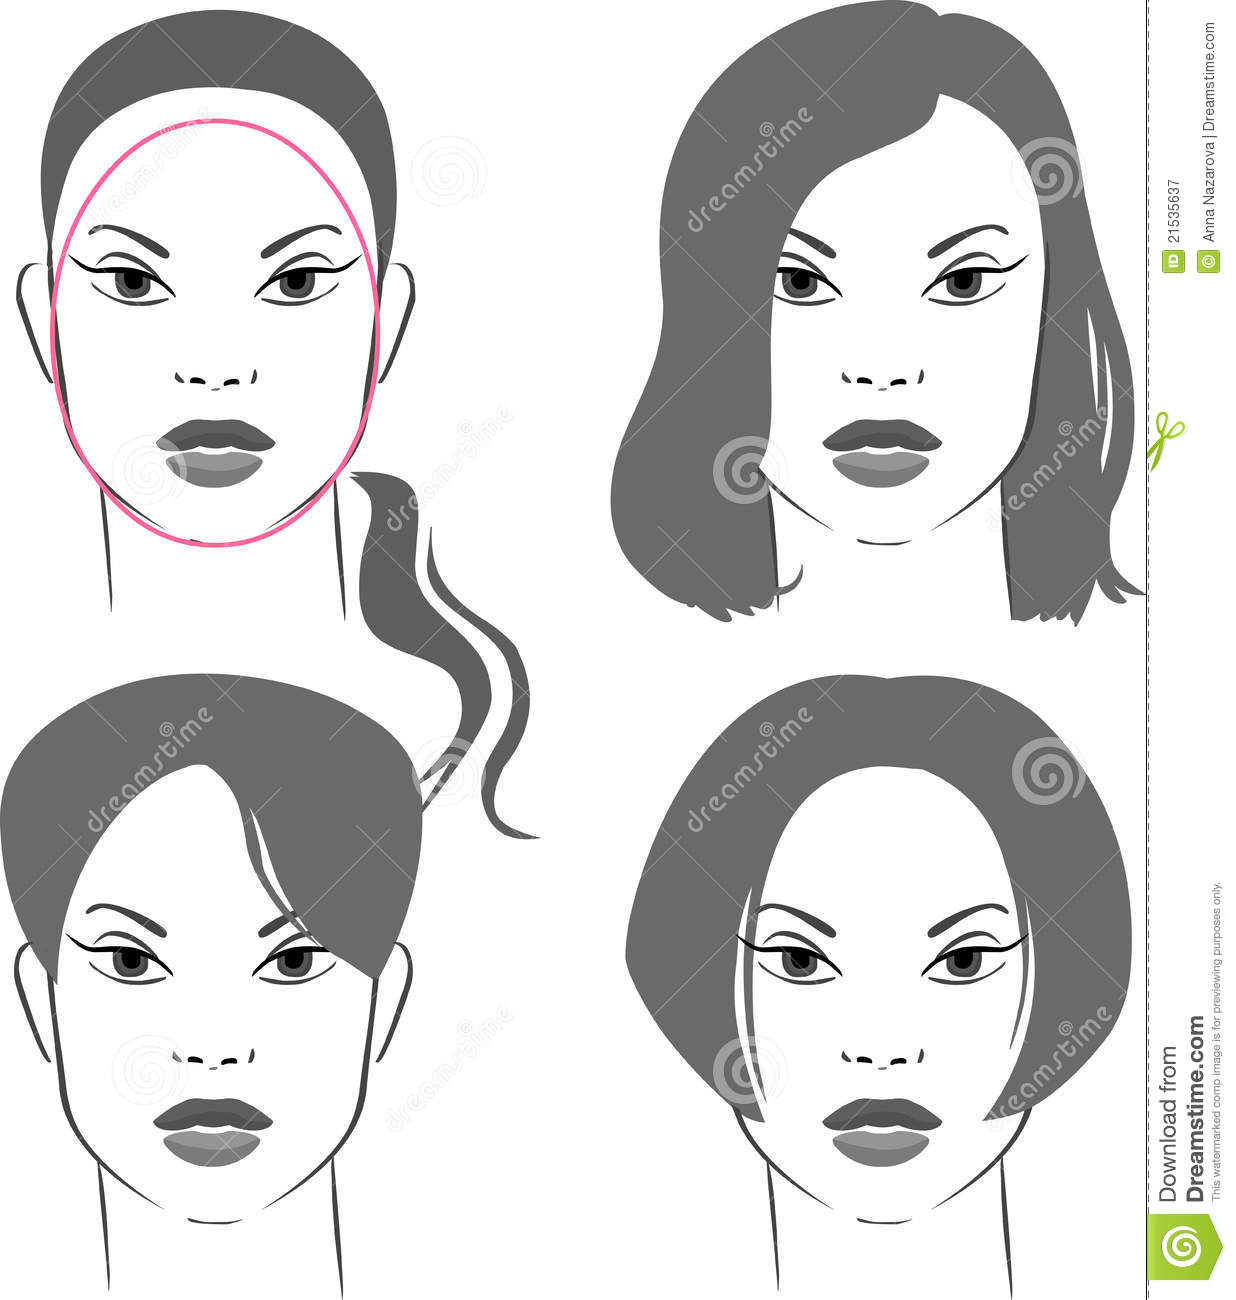 Hairstyles For Oval Face Royalty Free Stock Photography